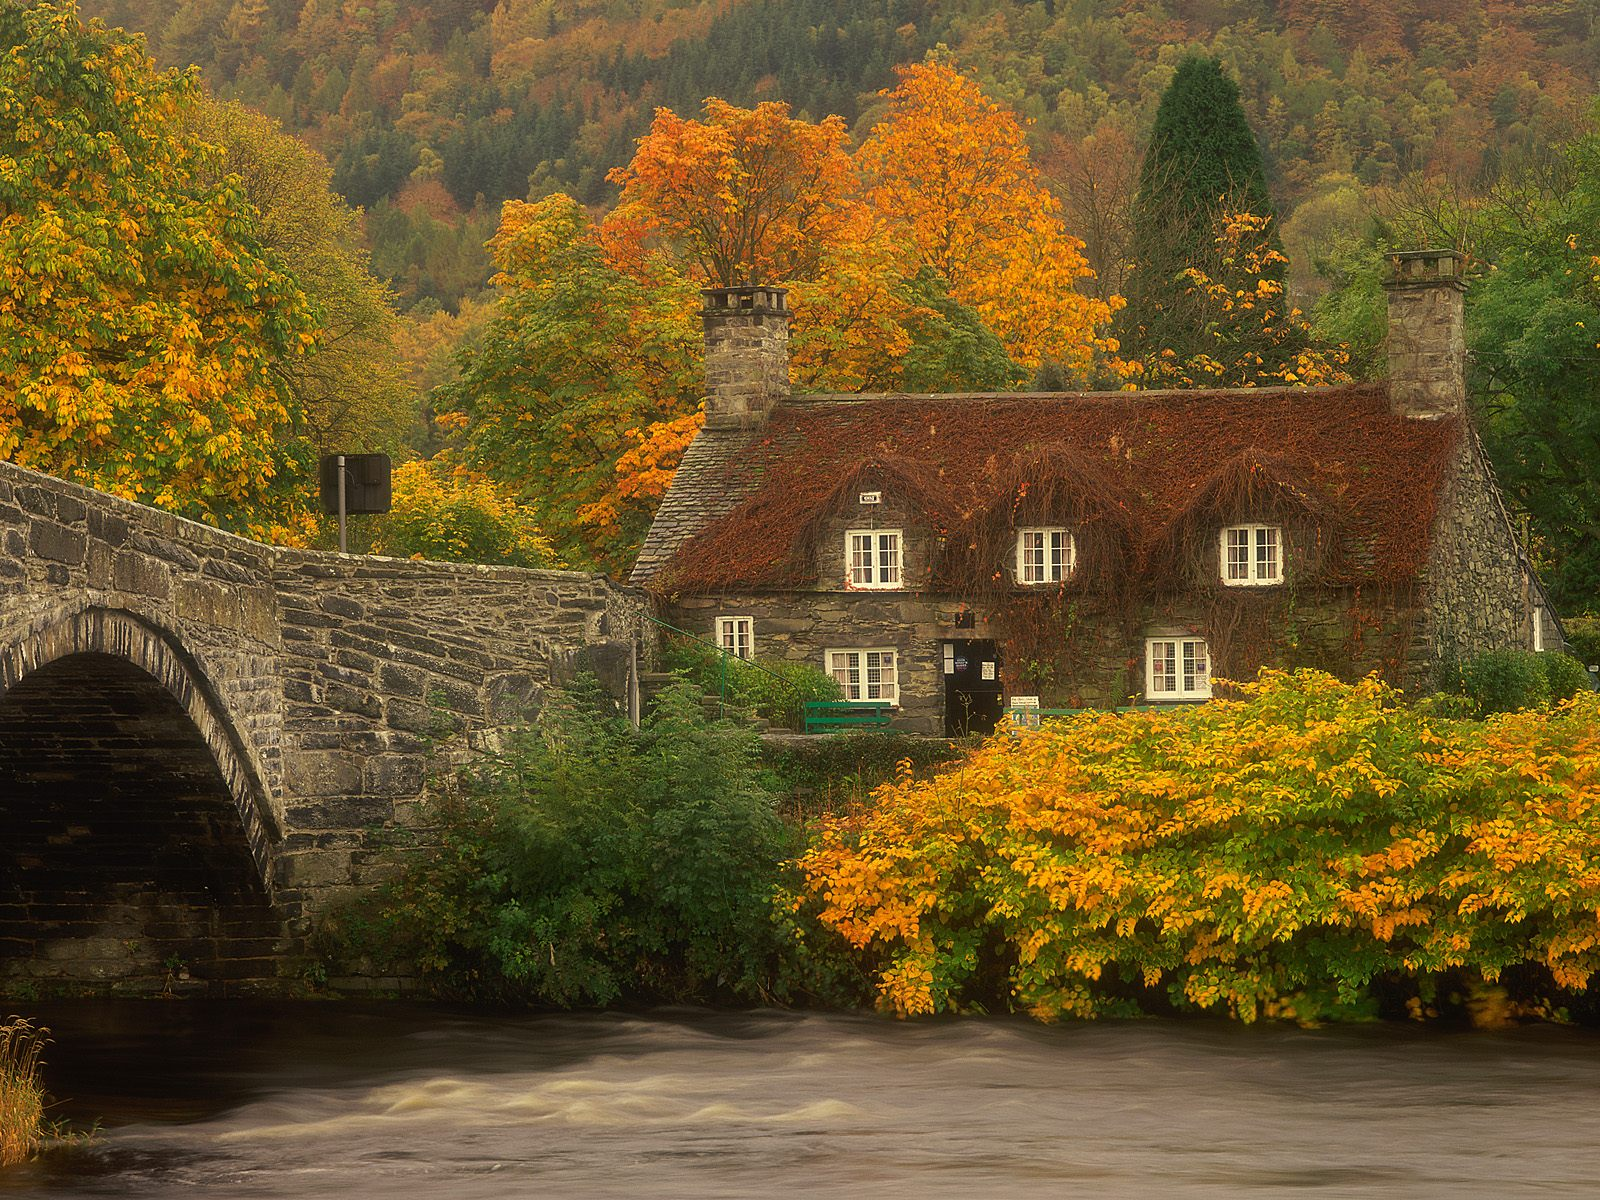 Download Llanrwst Wales Wallpapers Pictures Photos and Backgrounds 1600x1200